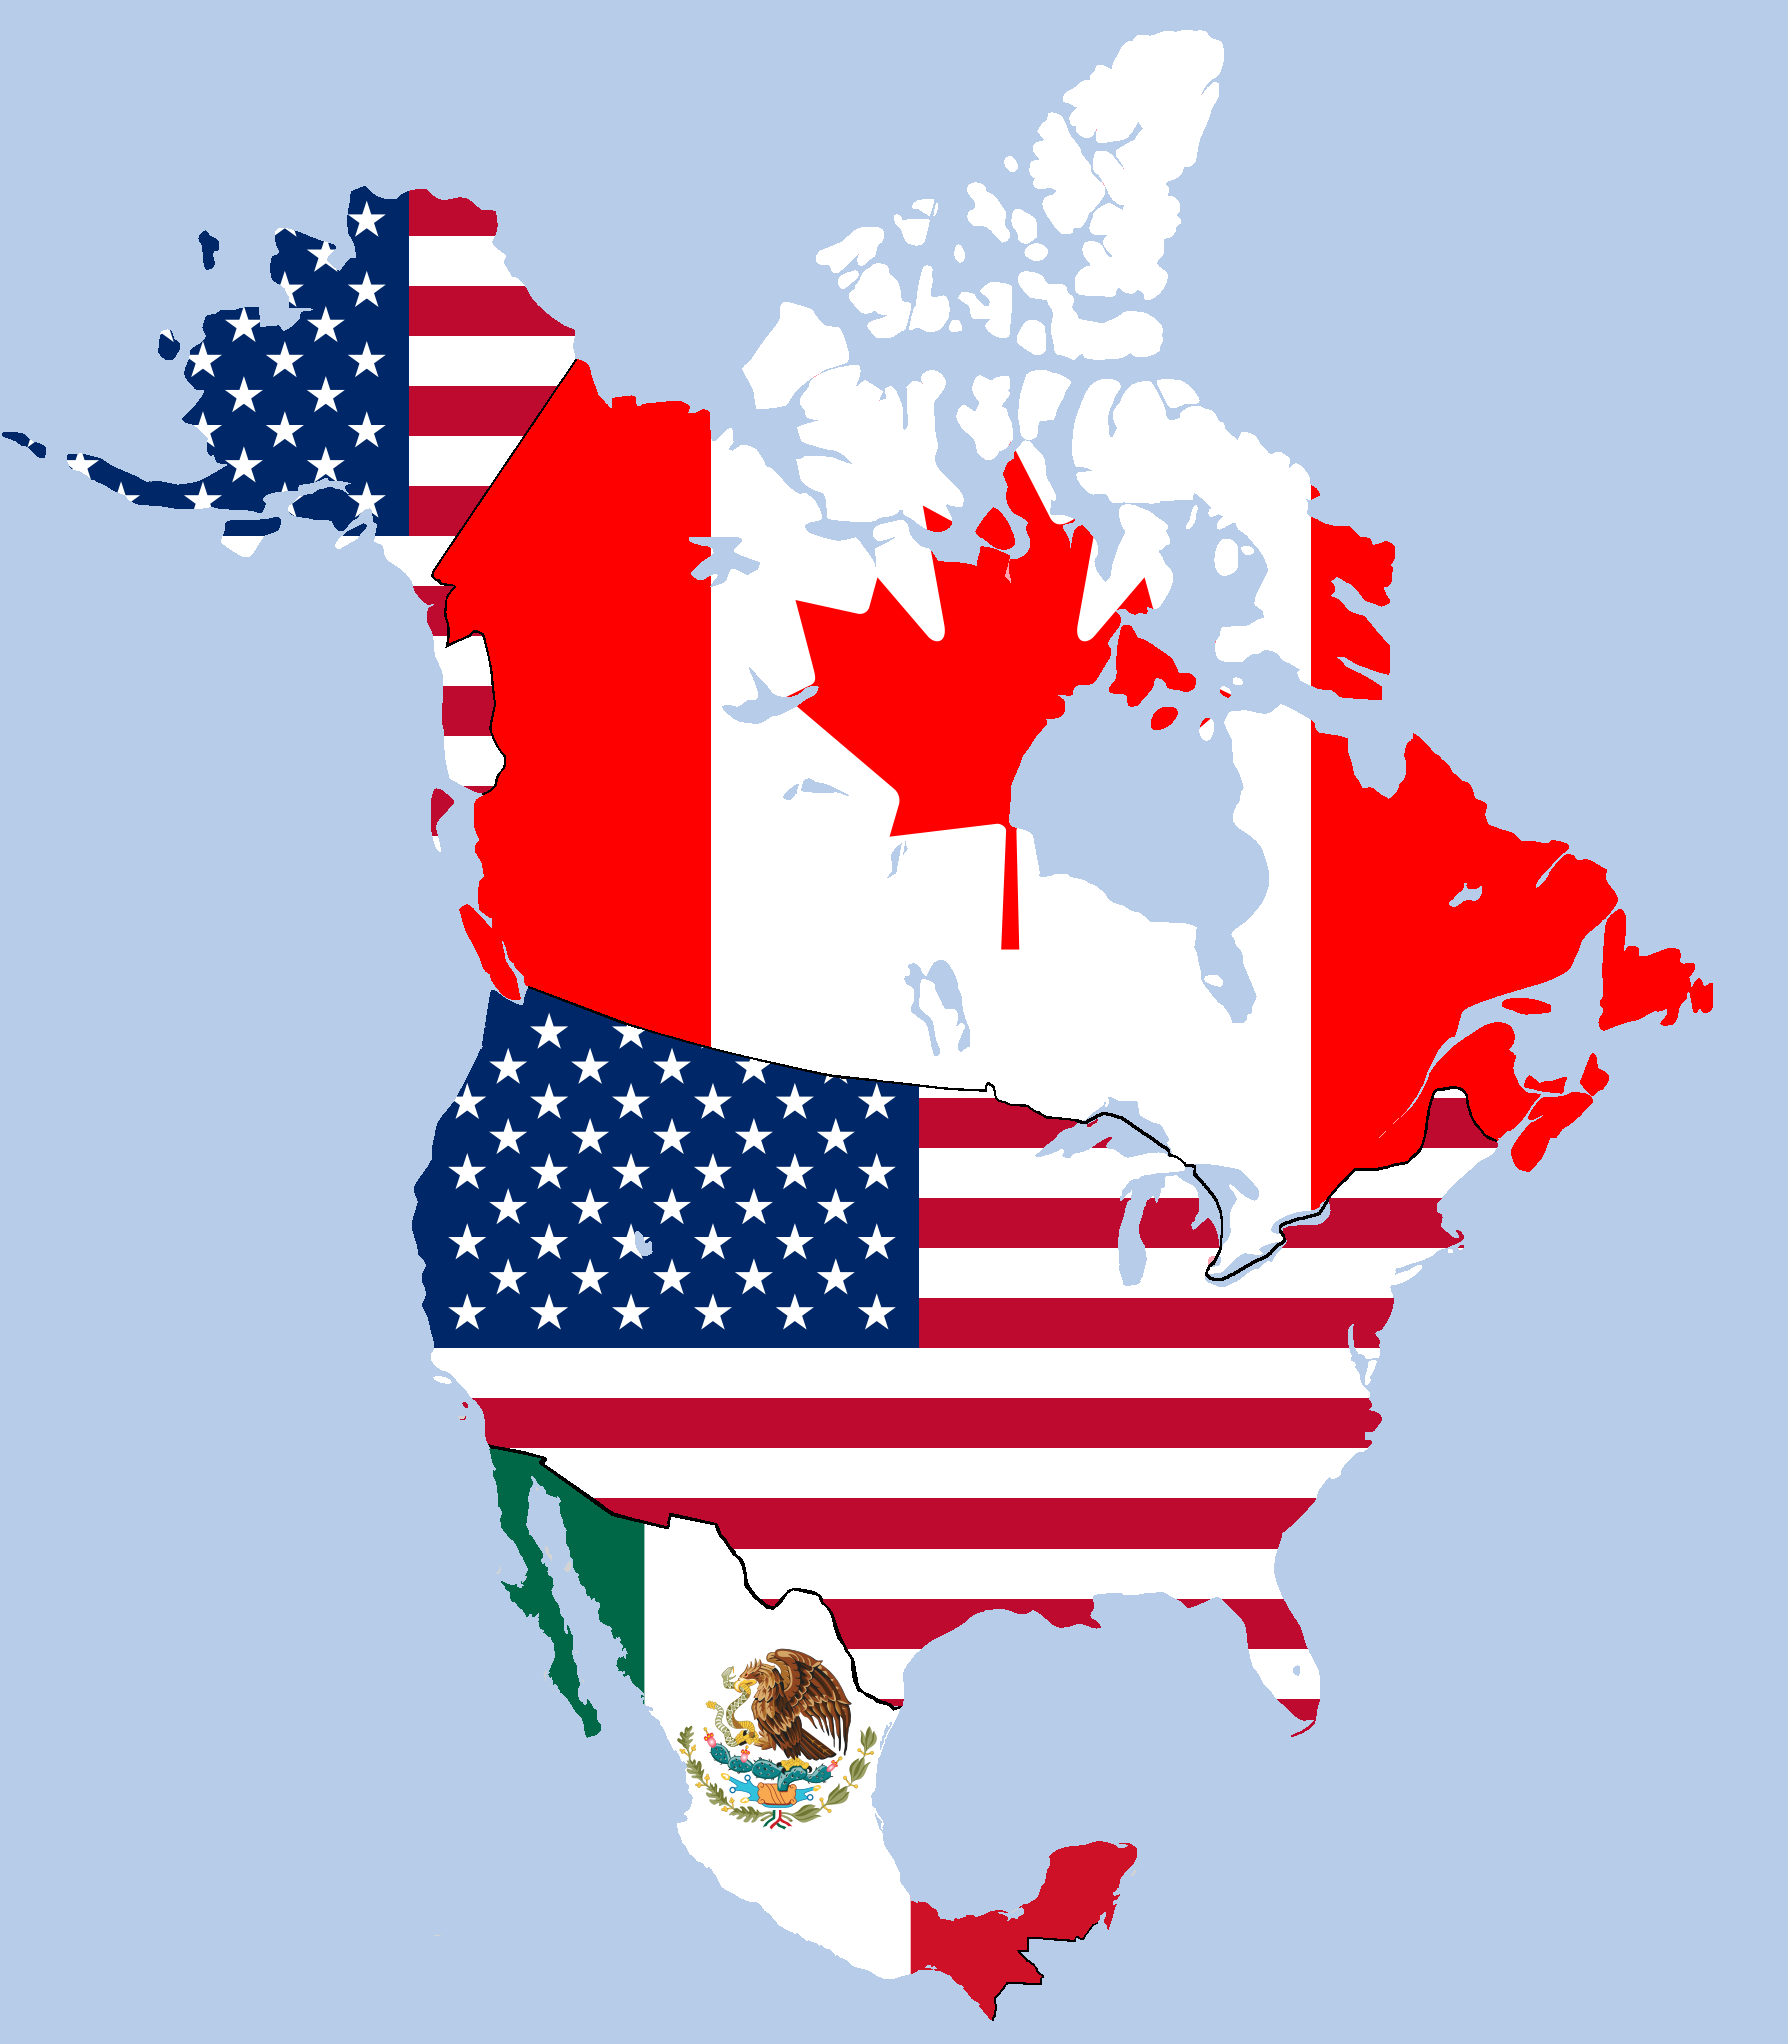 how the north american free trade North american free trade agreement (nafta) established a free-trade zone in  north america it was signed in 1992 by canada, mexico, and.